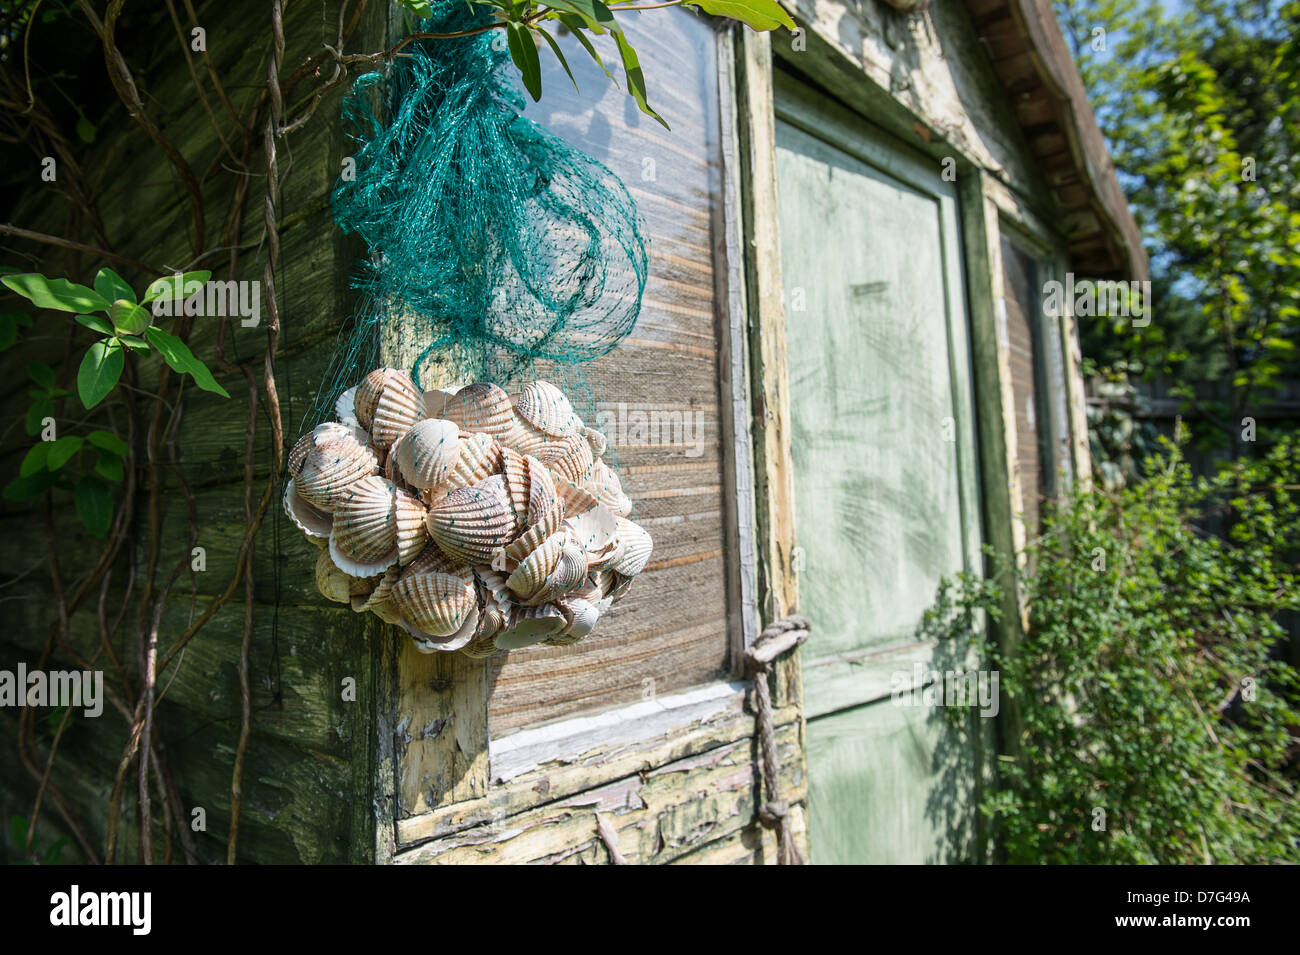 Beach hut in a city garden with lime washed panels and shell decorations - Stock Image